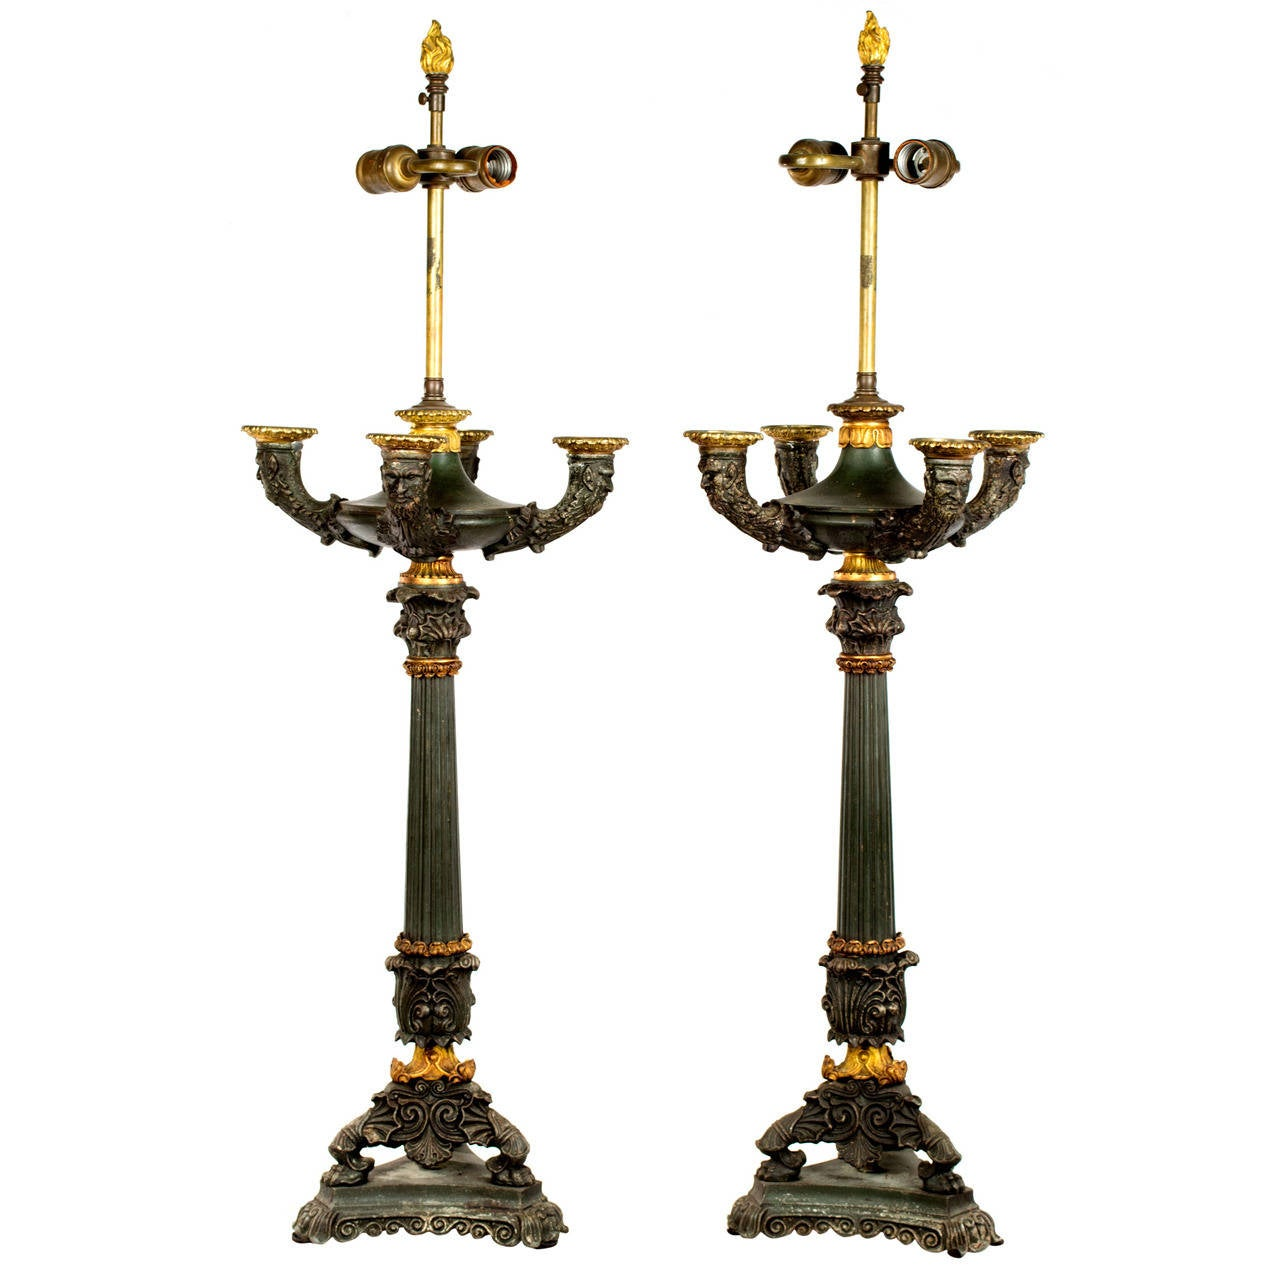 Pair of Bronze and Ormolu Renaissance Revival Table Lamps For Sale